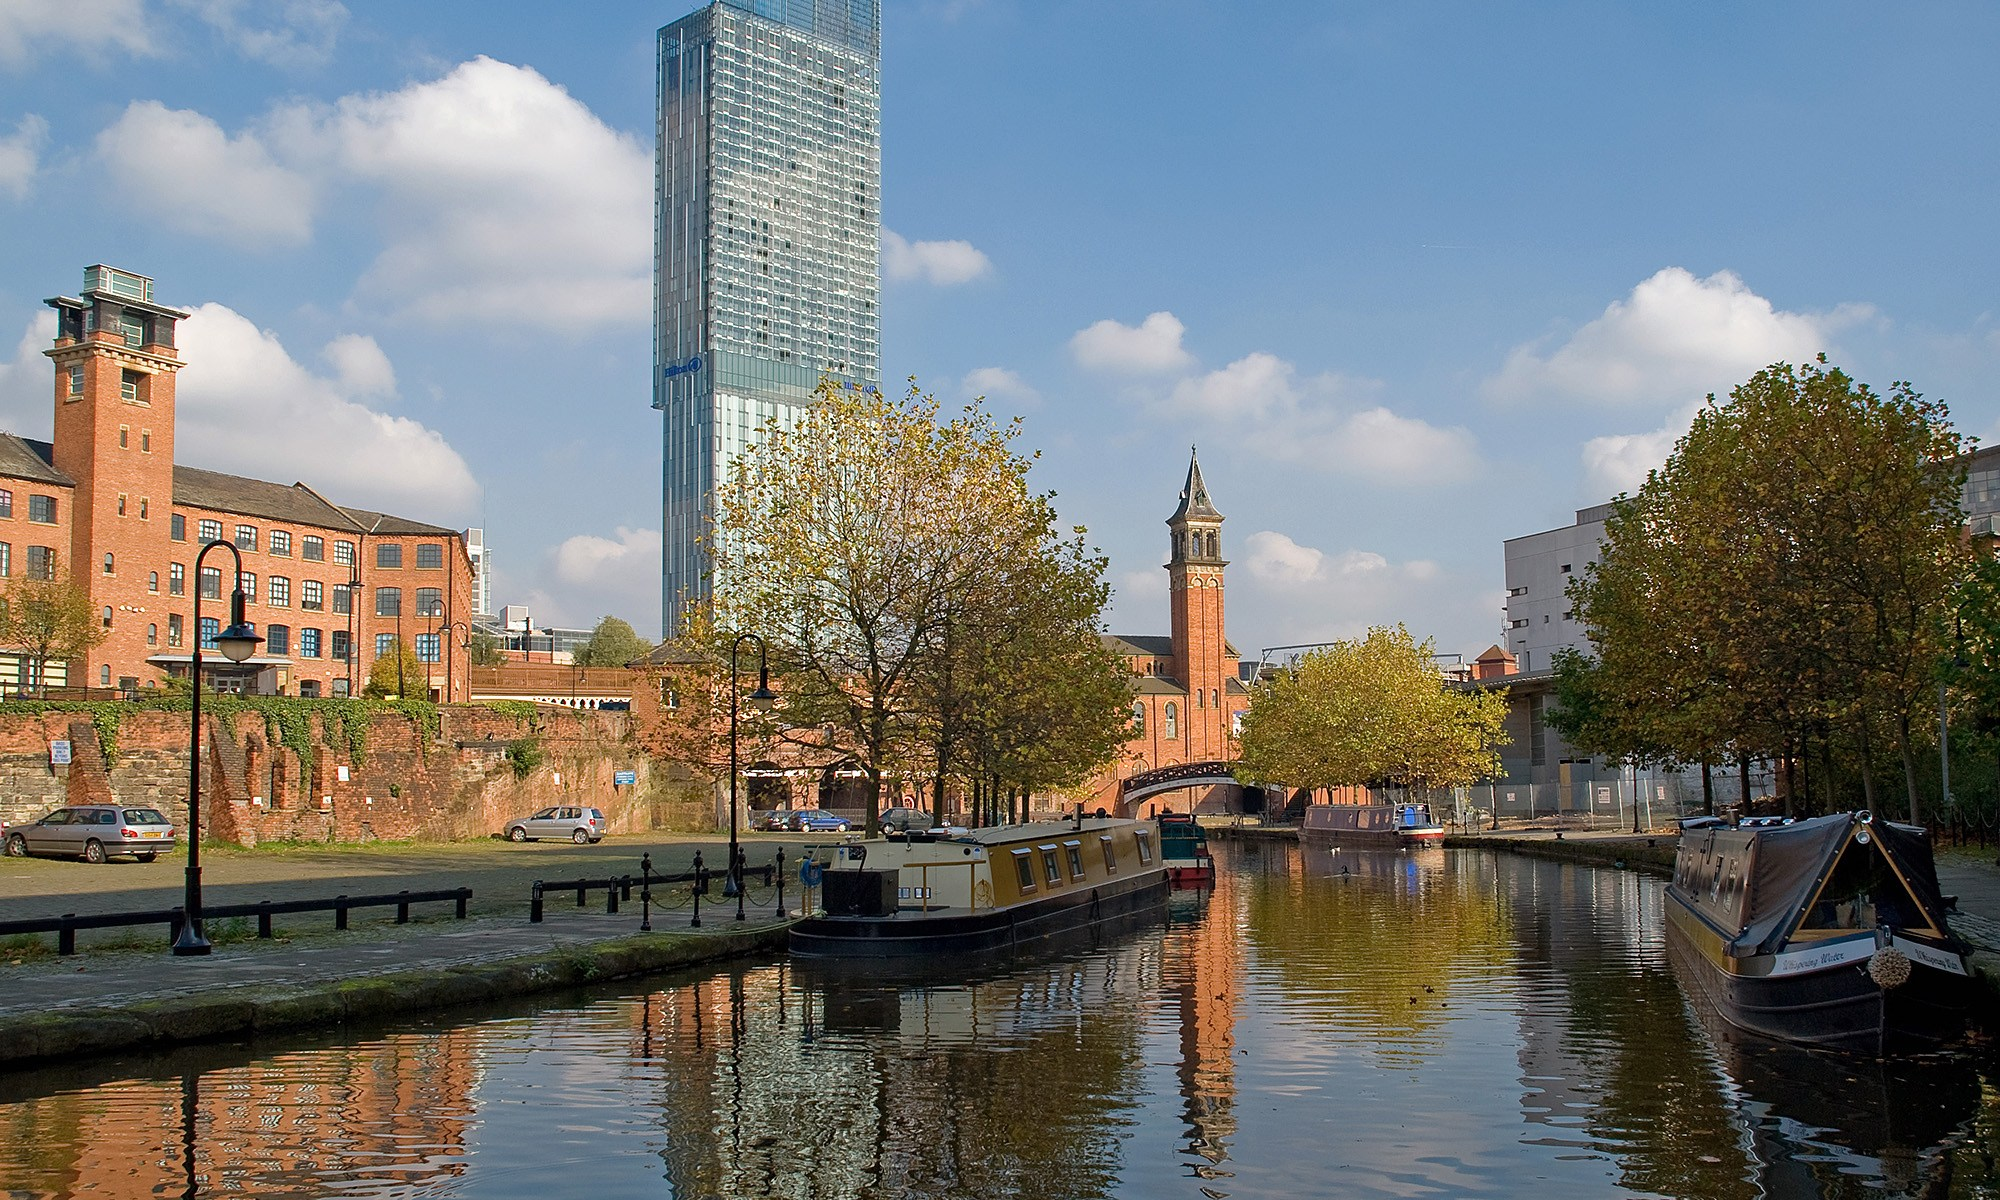 Canal at Castlefield, with Beetham Tower